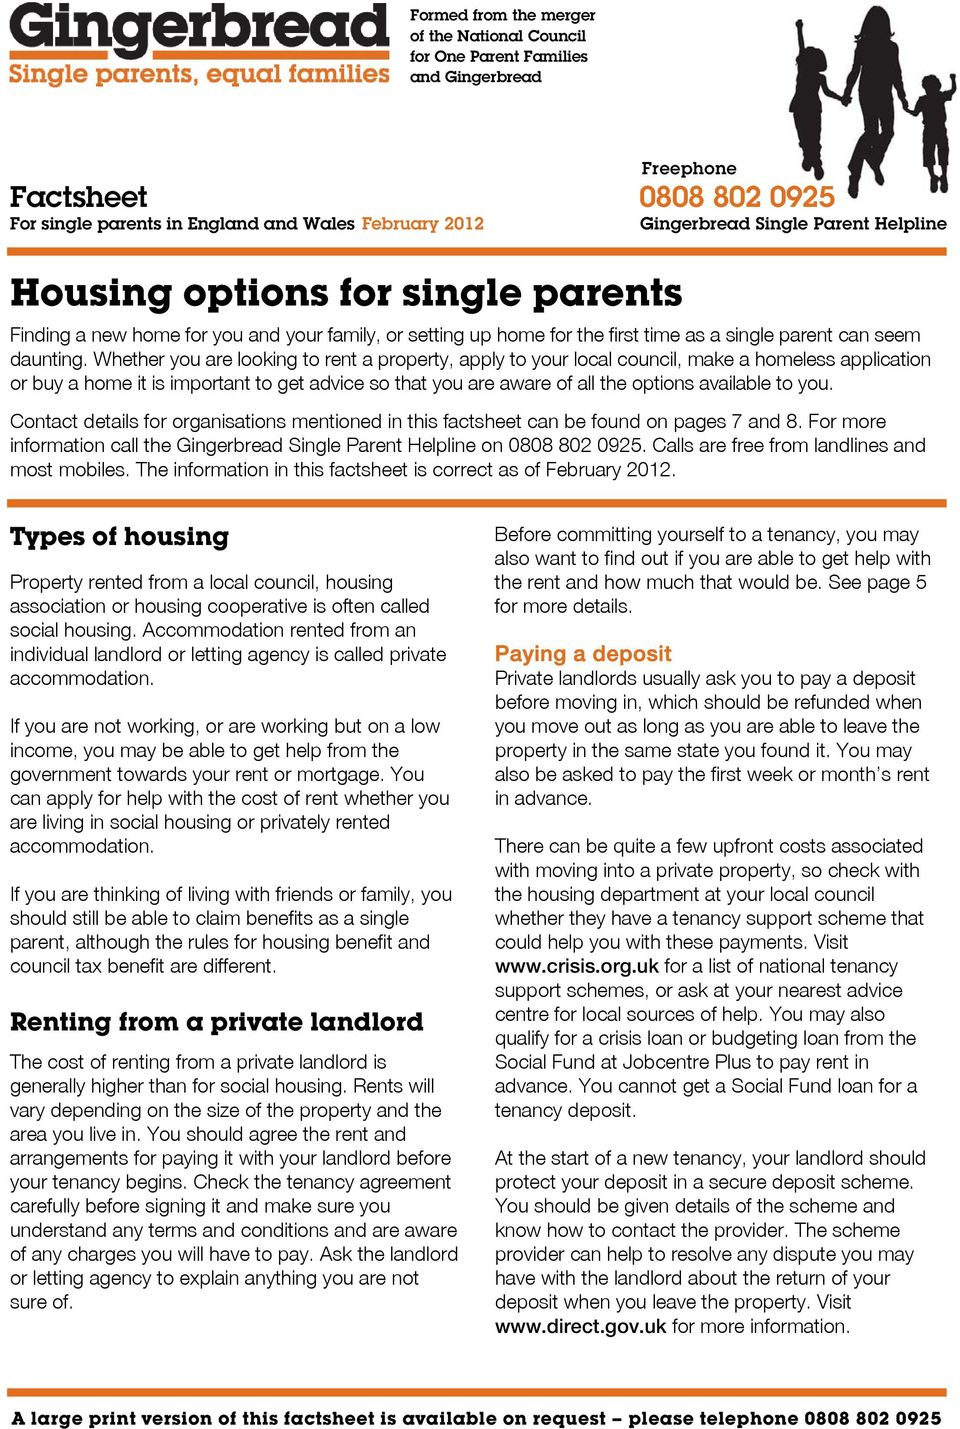 Whether you are looking to rent a property, apply to your local council, make a homeless application or buy a home it is important to get advice so that you are aware of all the options available to